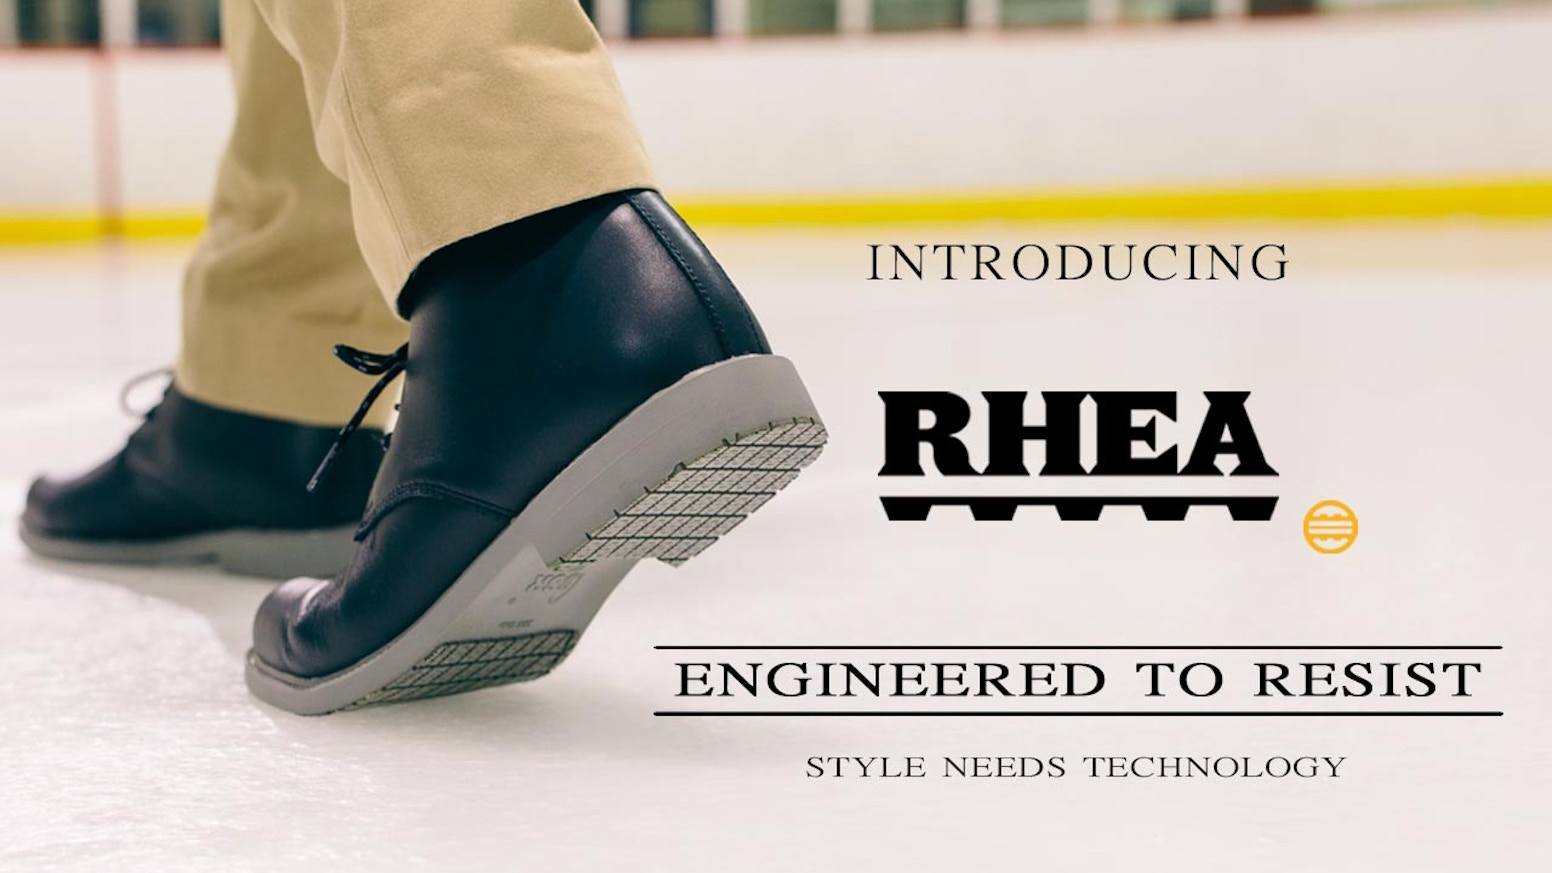 Rhea is launching the first Men and Women classic line, combining patented technology with designed shoes. Yes, Style needs technology.